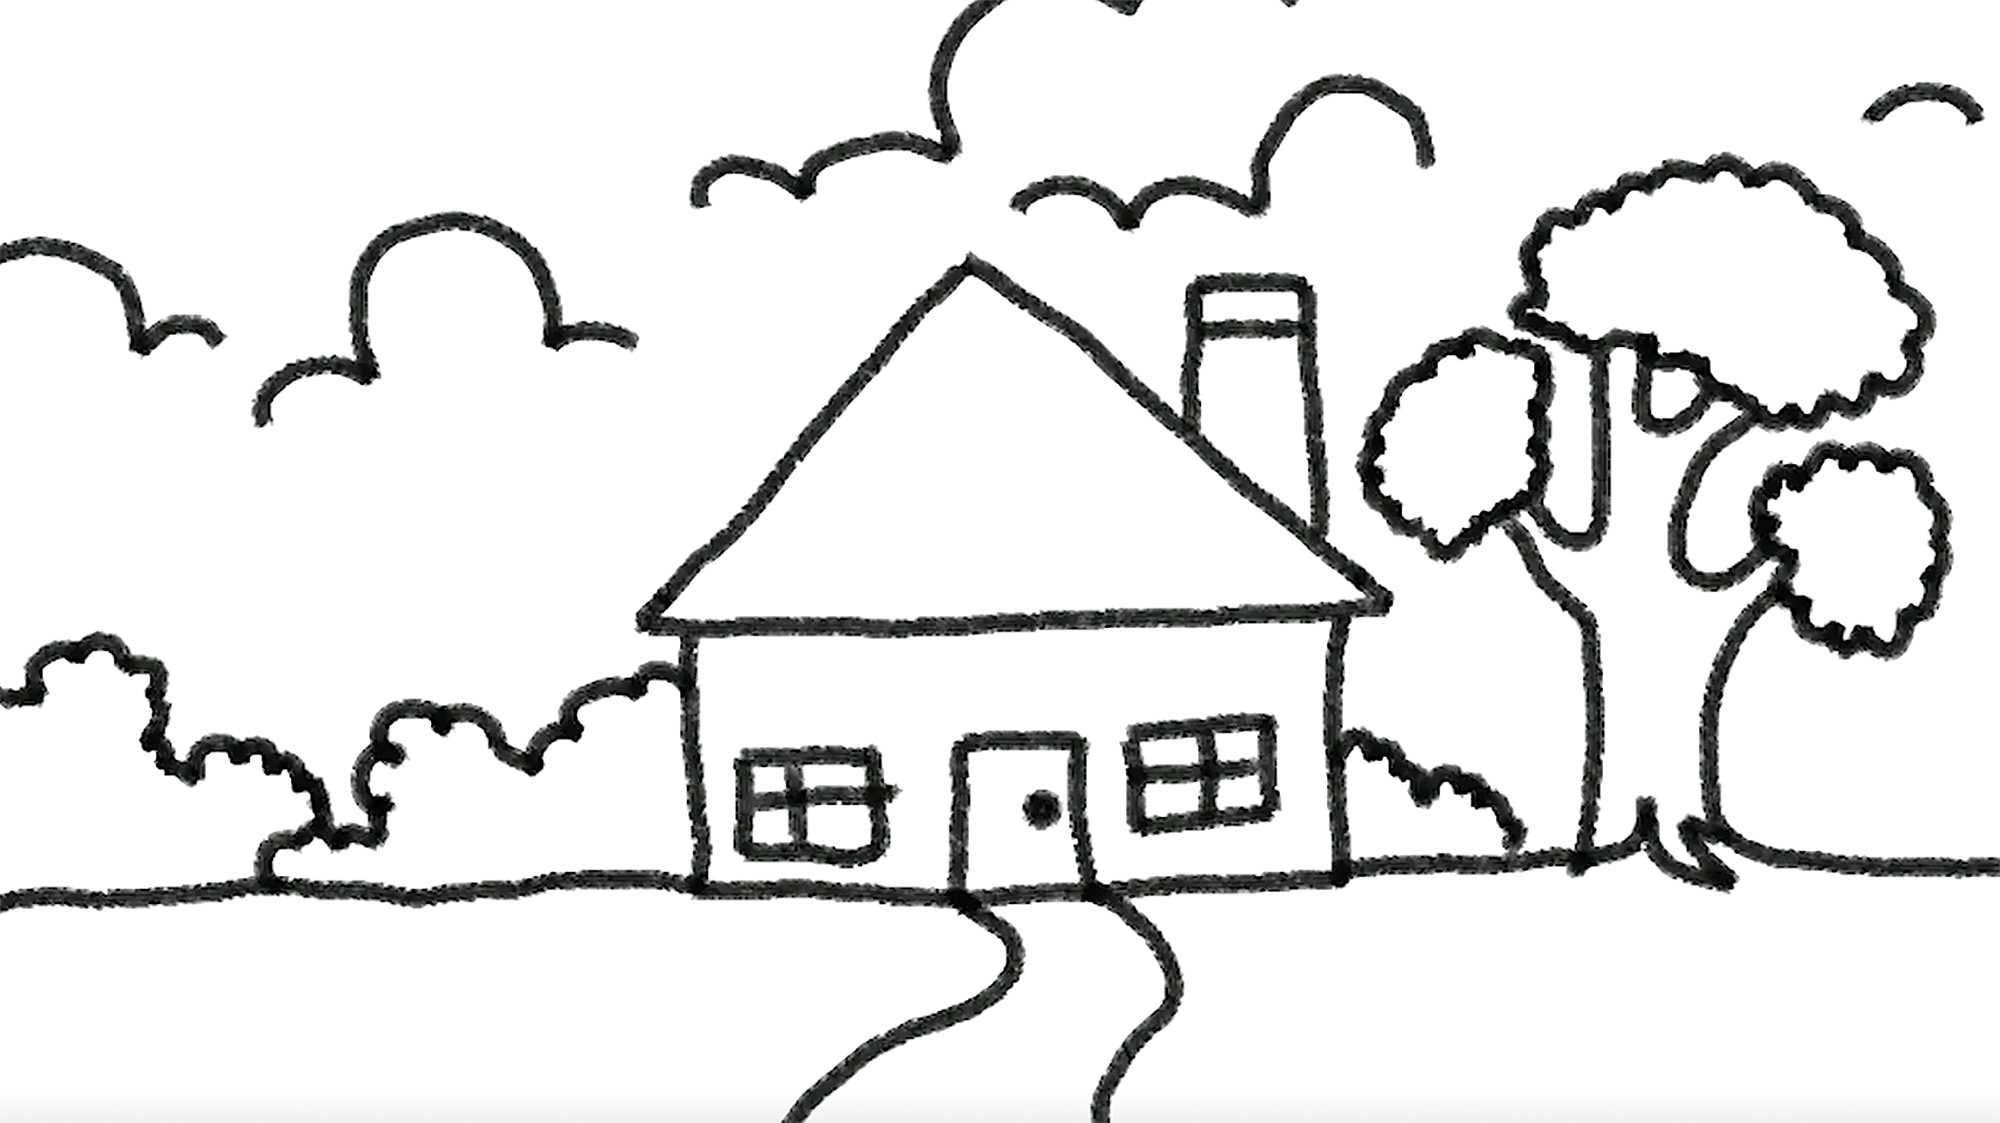 HOUSE-DRAWING-1-1